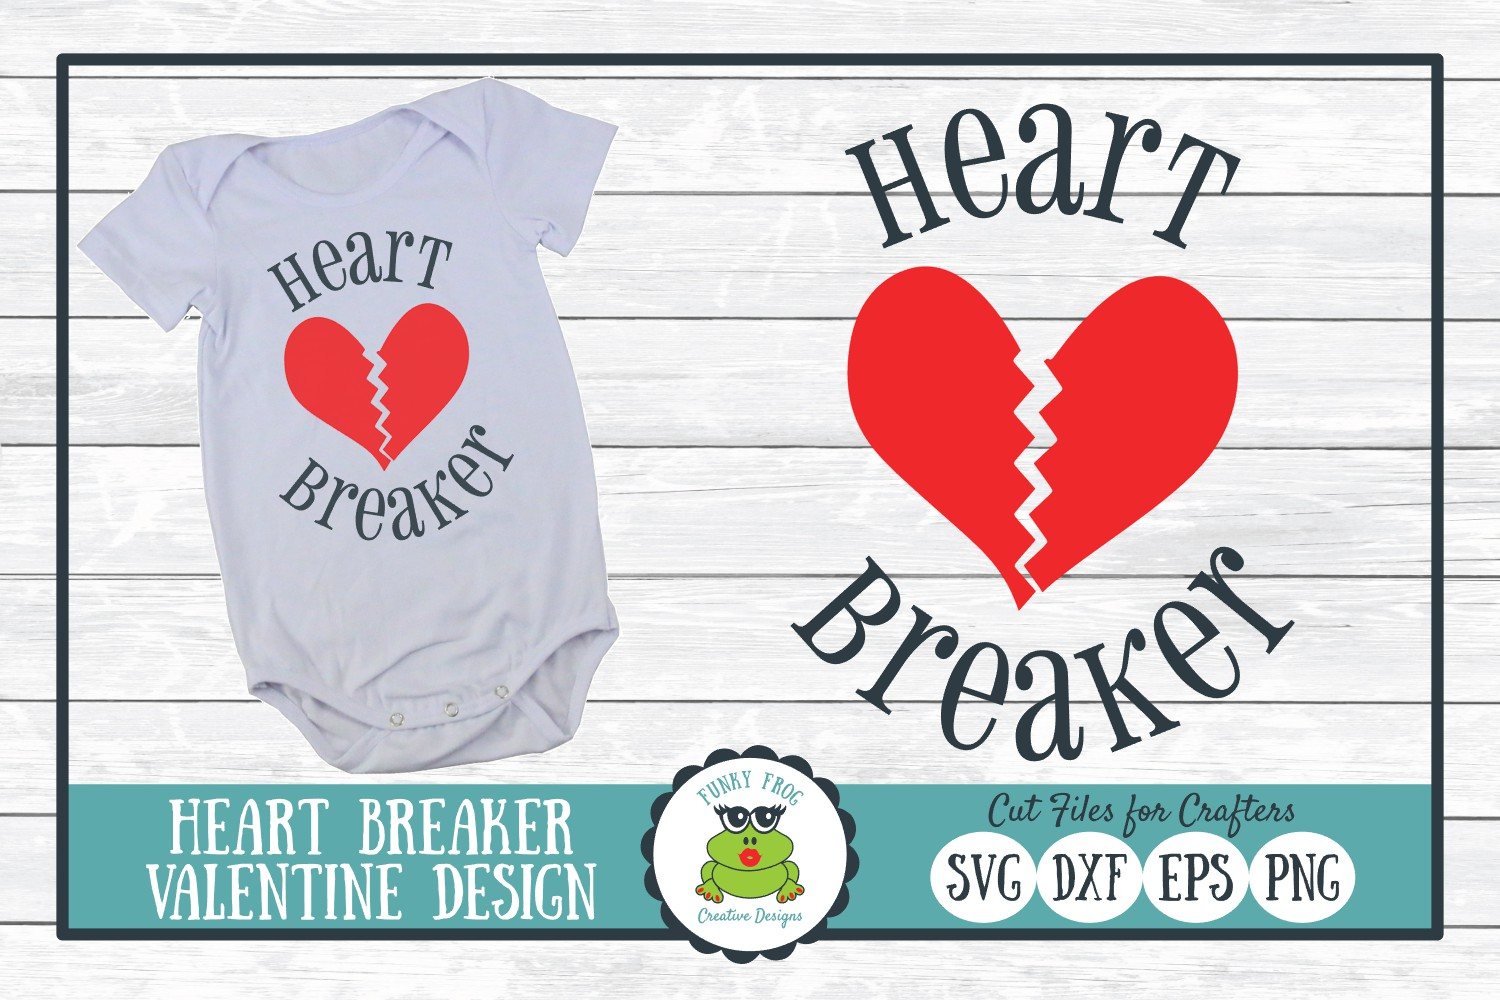 Download Free Heartbreaker Valentine Graphic By Funkyfrogcreativedesigns for Cricut Explore, Silhouette and other cutting machines.